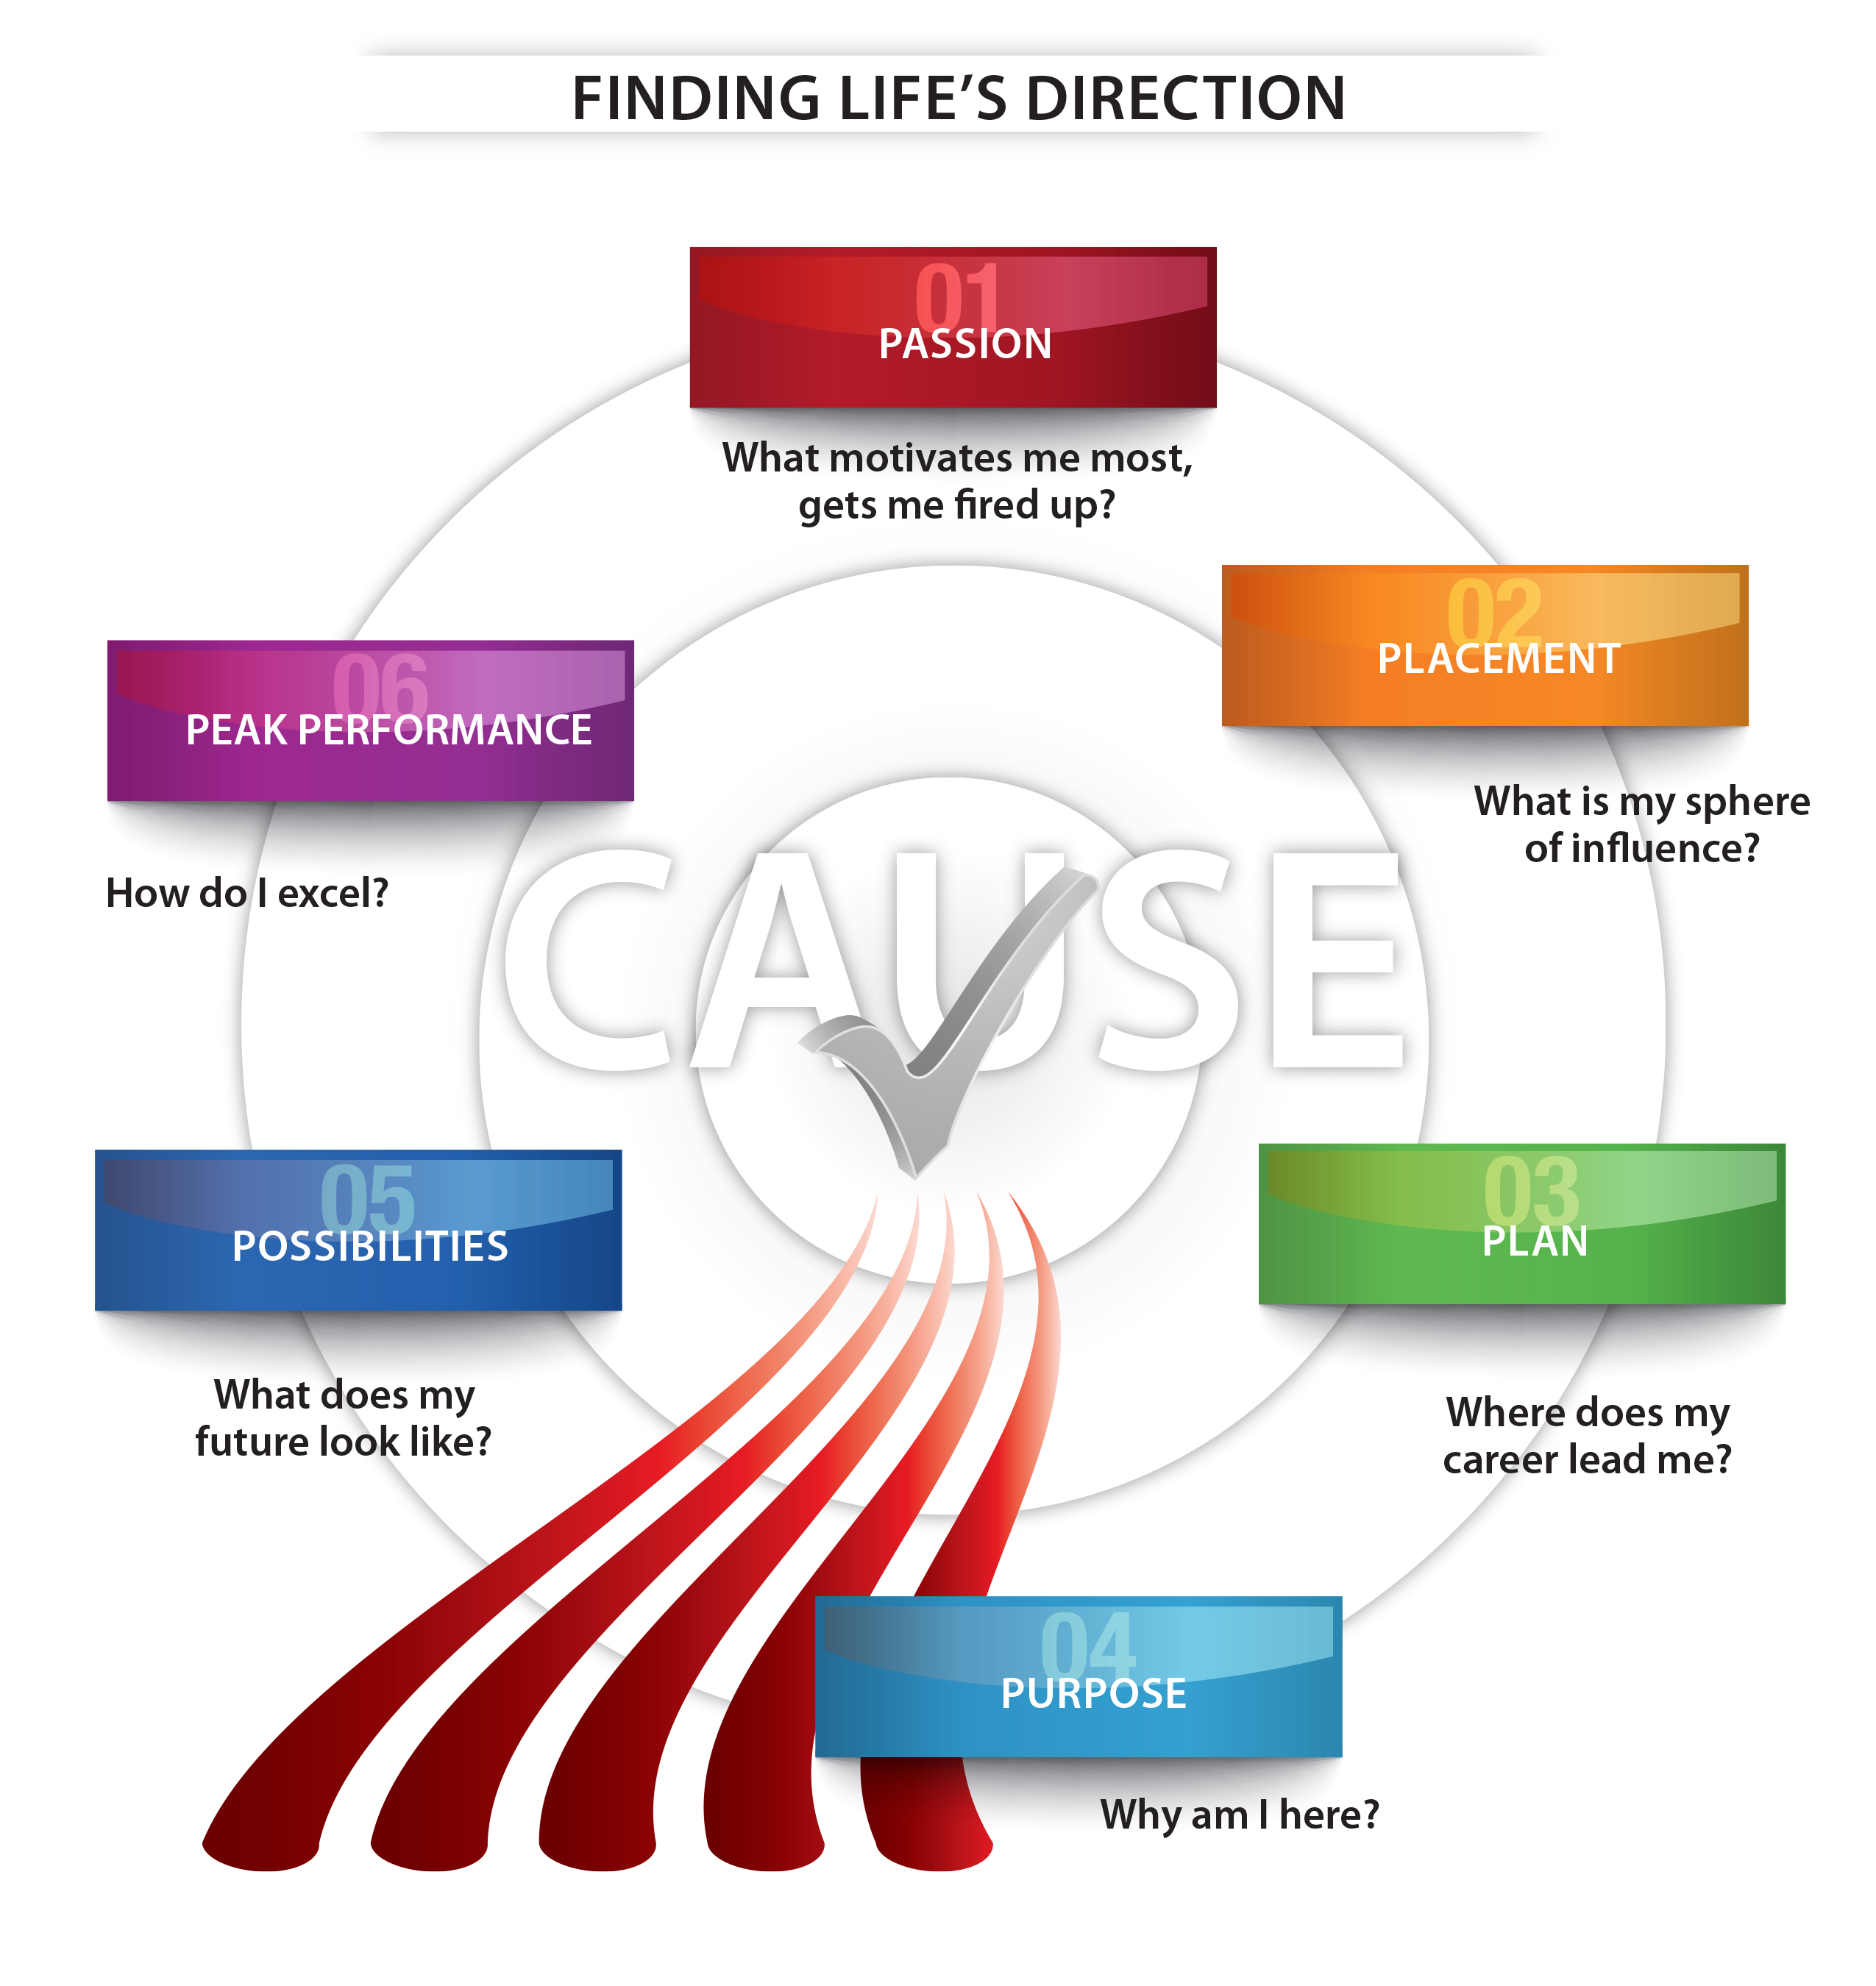 Finding Life's Direction